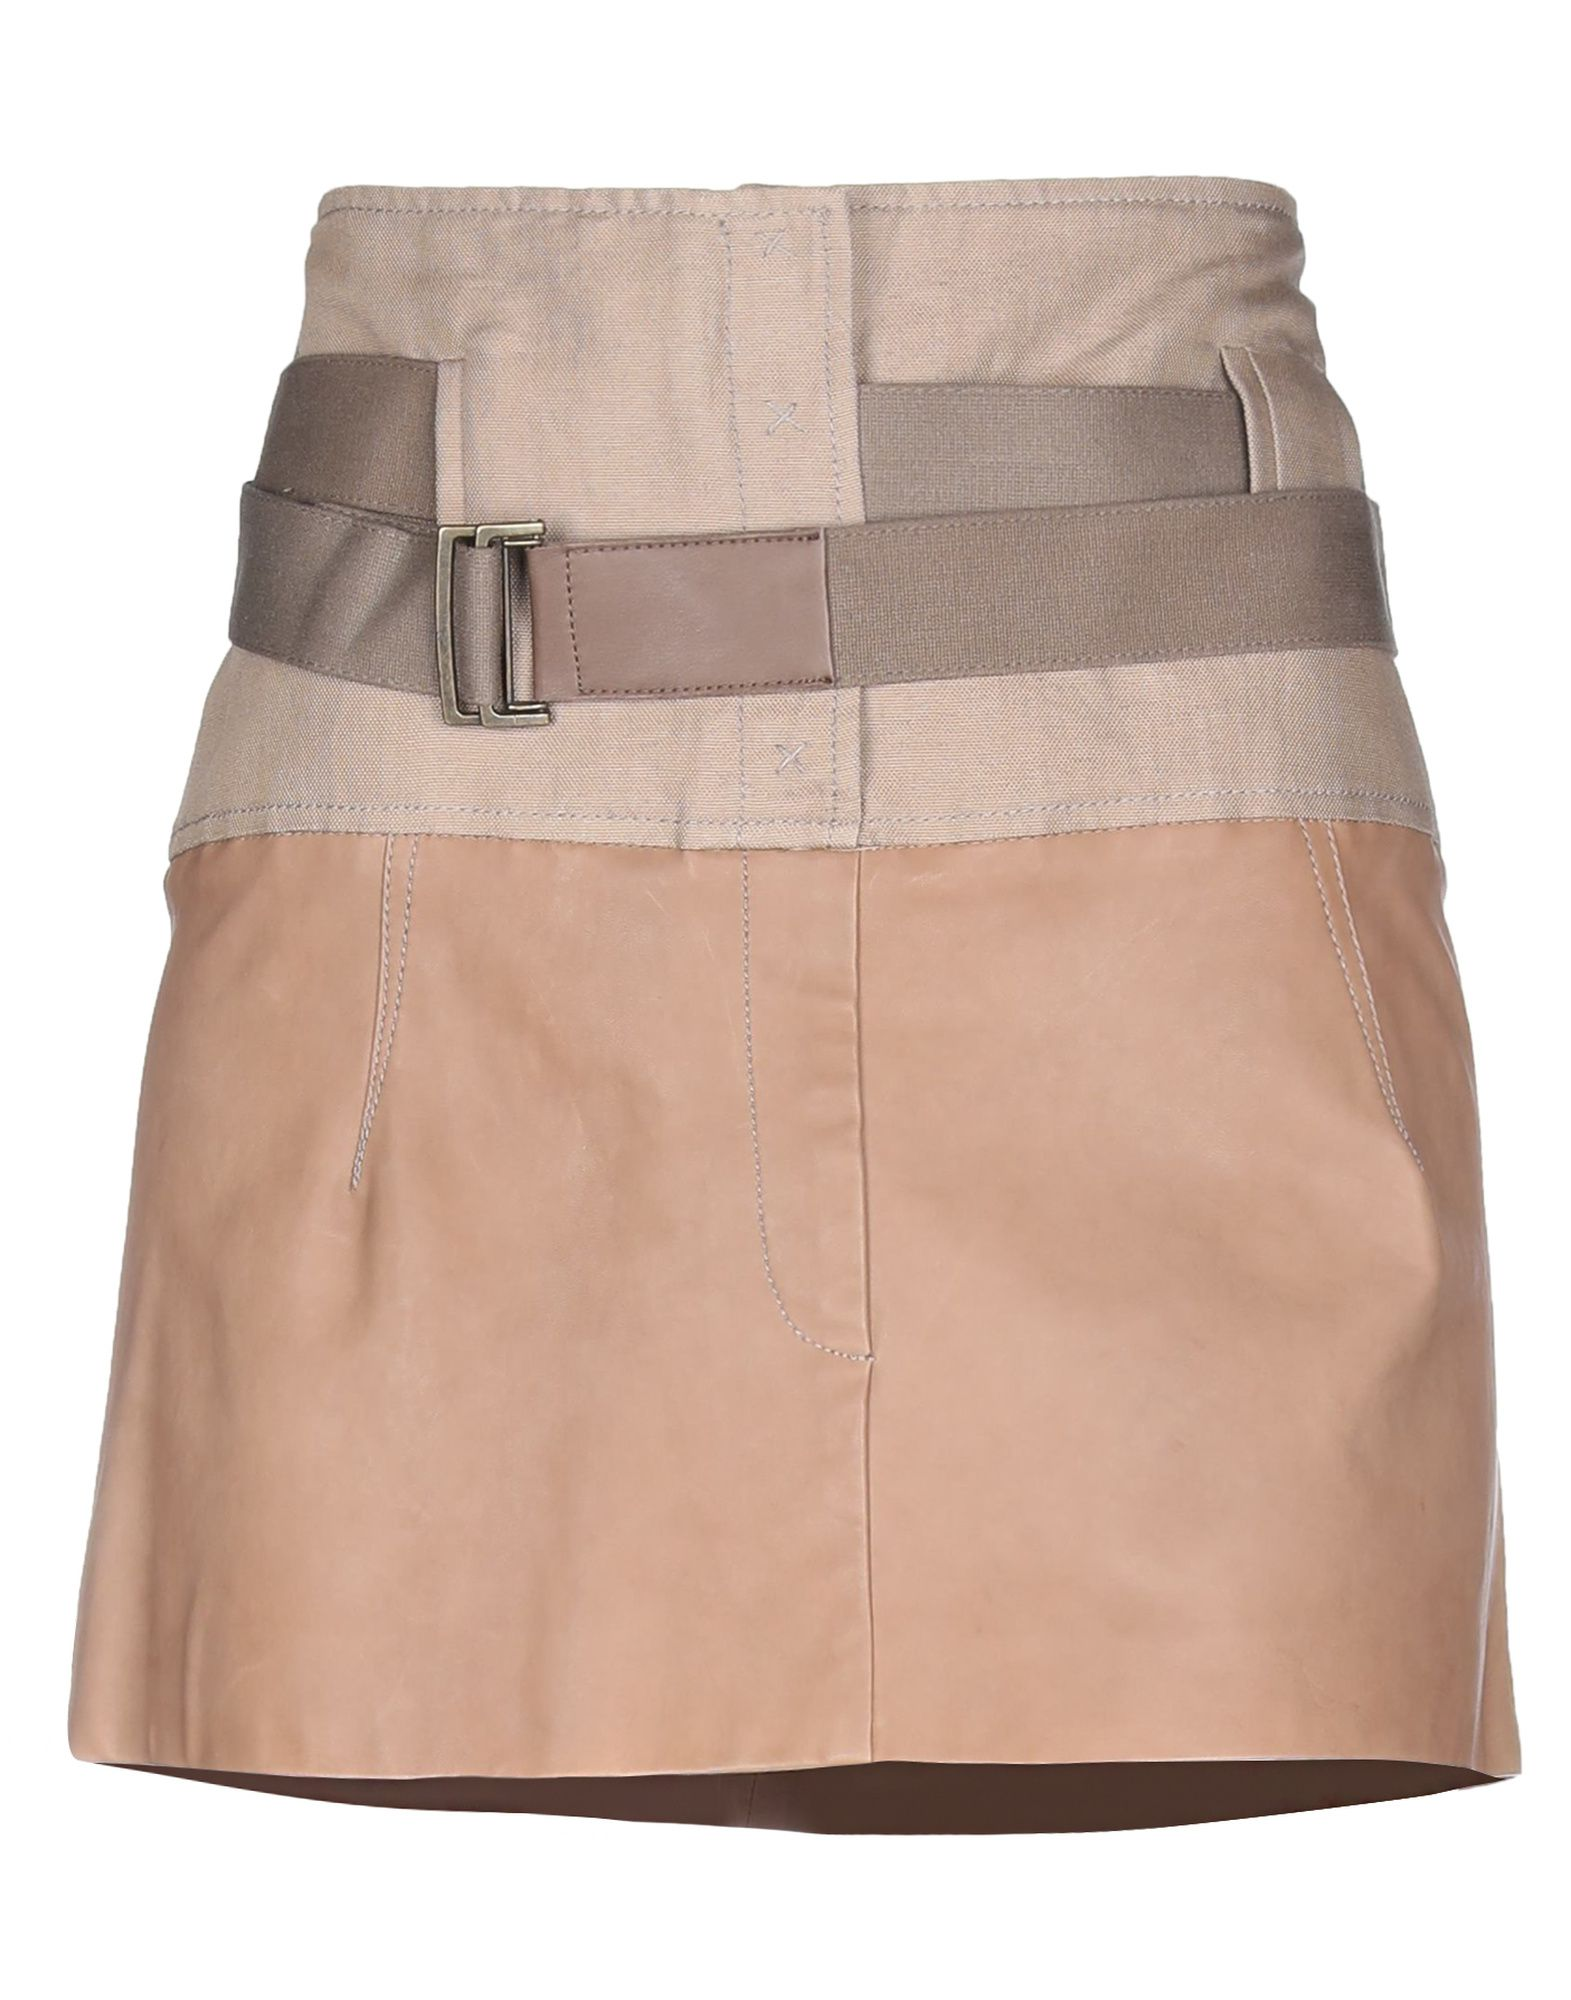 BRUNELLO CUCINELLI Mini skirts. leather, canvas, belt, two-tone, no pockets, front closure, snap button fastening, unlined, contains non-textile parts of animal origin, large sized. 52% Cotton, 48% Ramie, Soft Leather